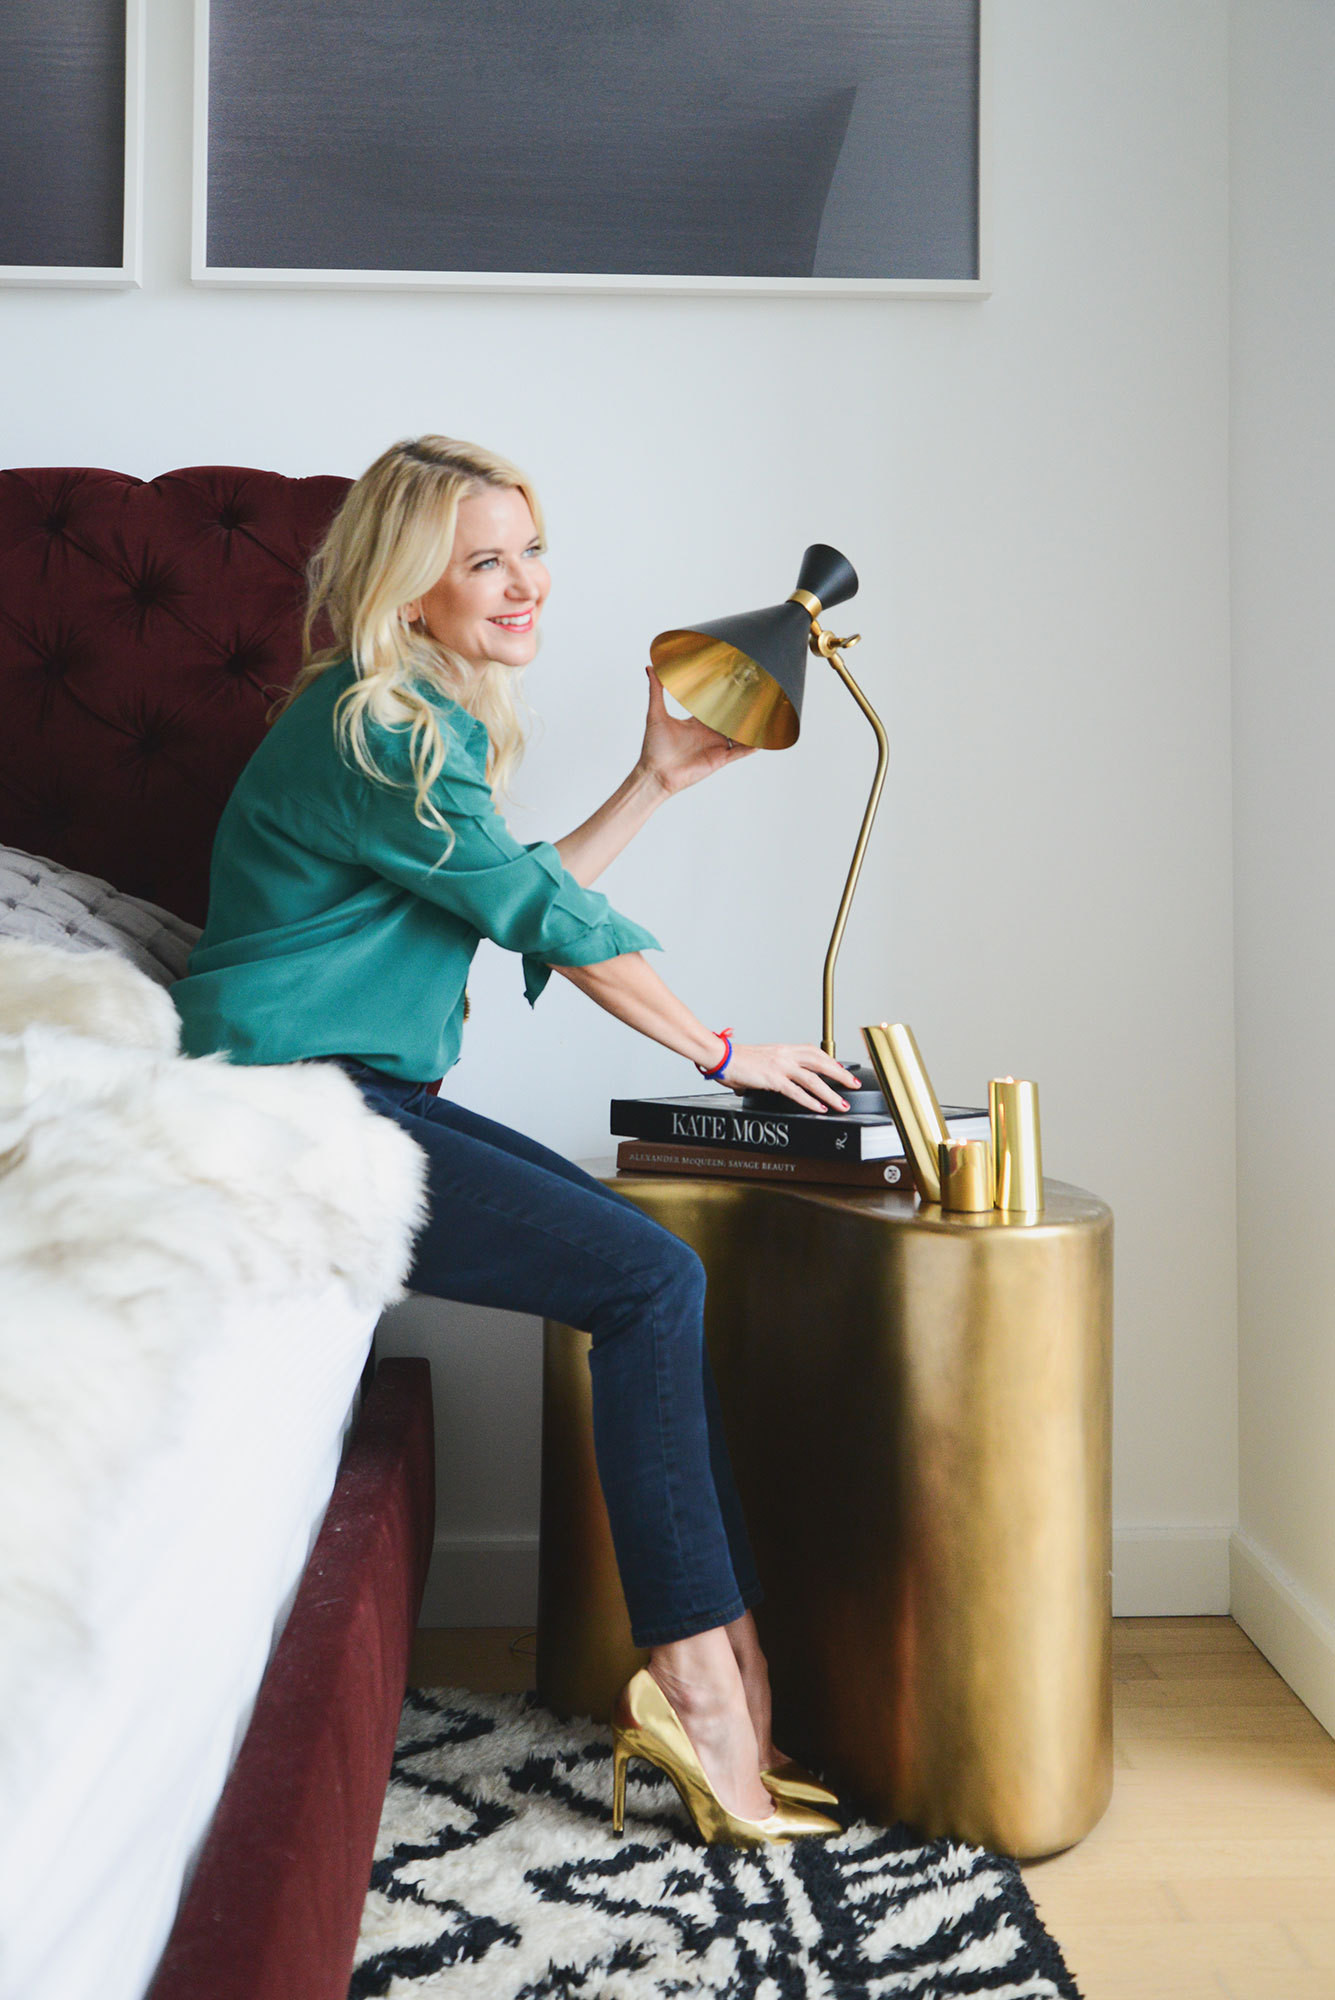 Lemieux makes minor adjustments to a DwellStudio task lamp on a bedside table.